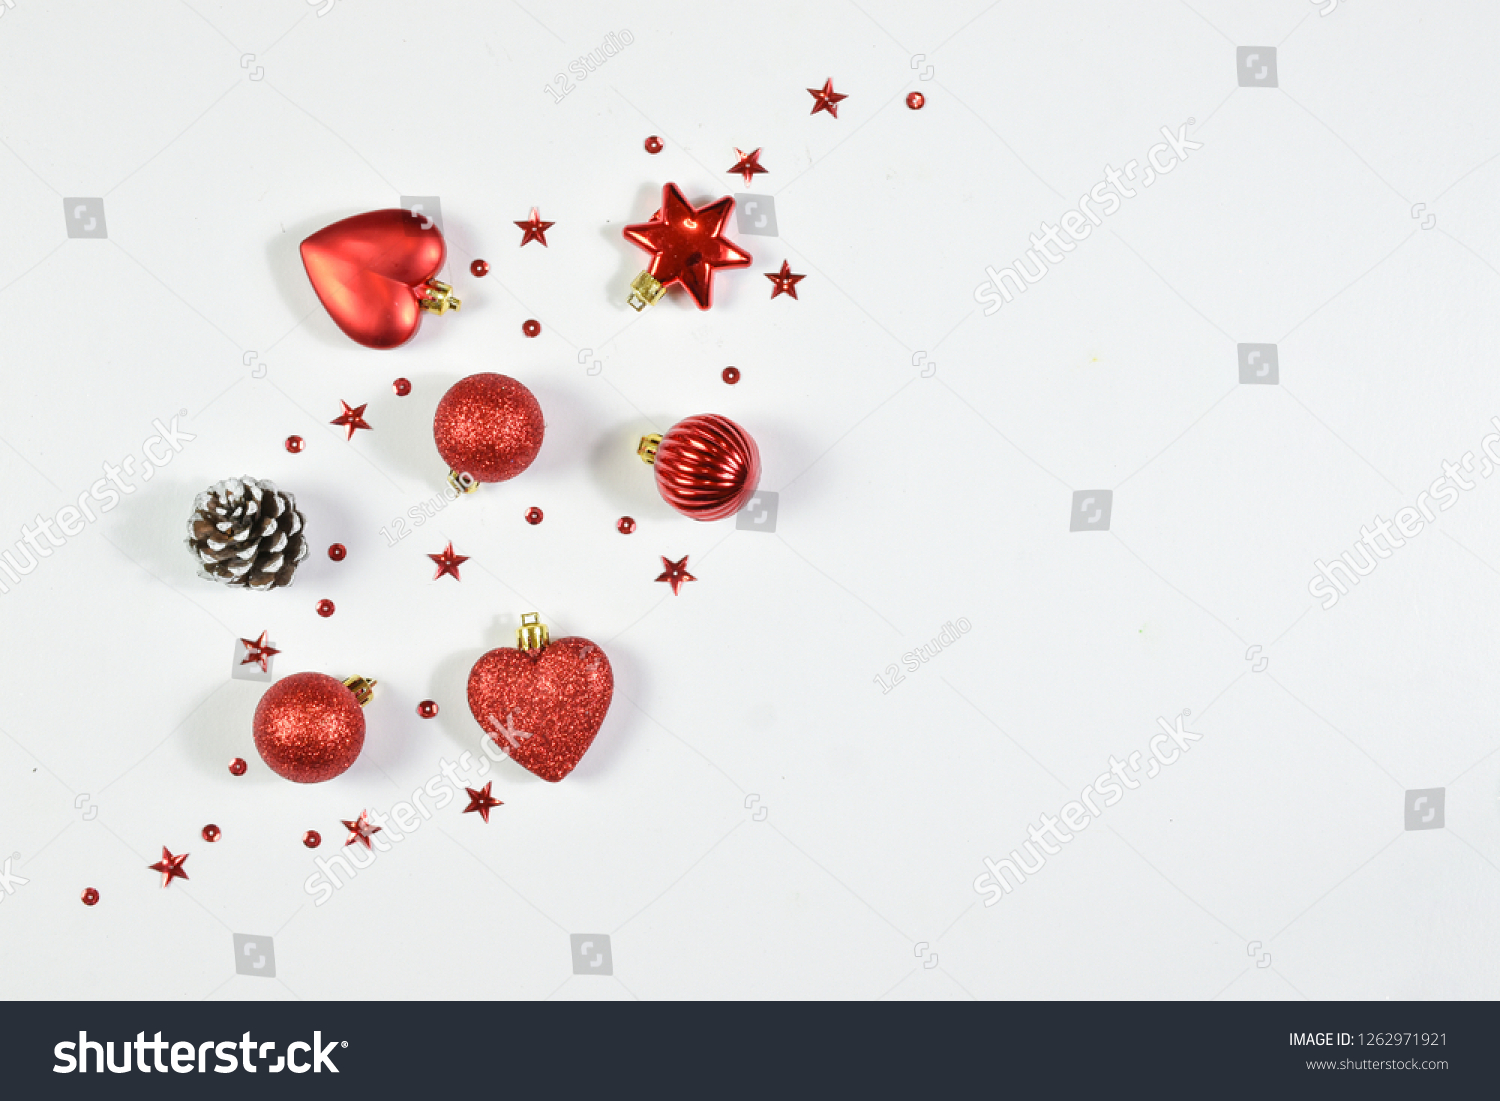 Christmas composition view. Flat lay of Christmas decoration with copy space on white background. Top view. #1262971921